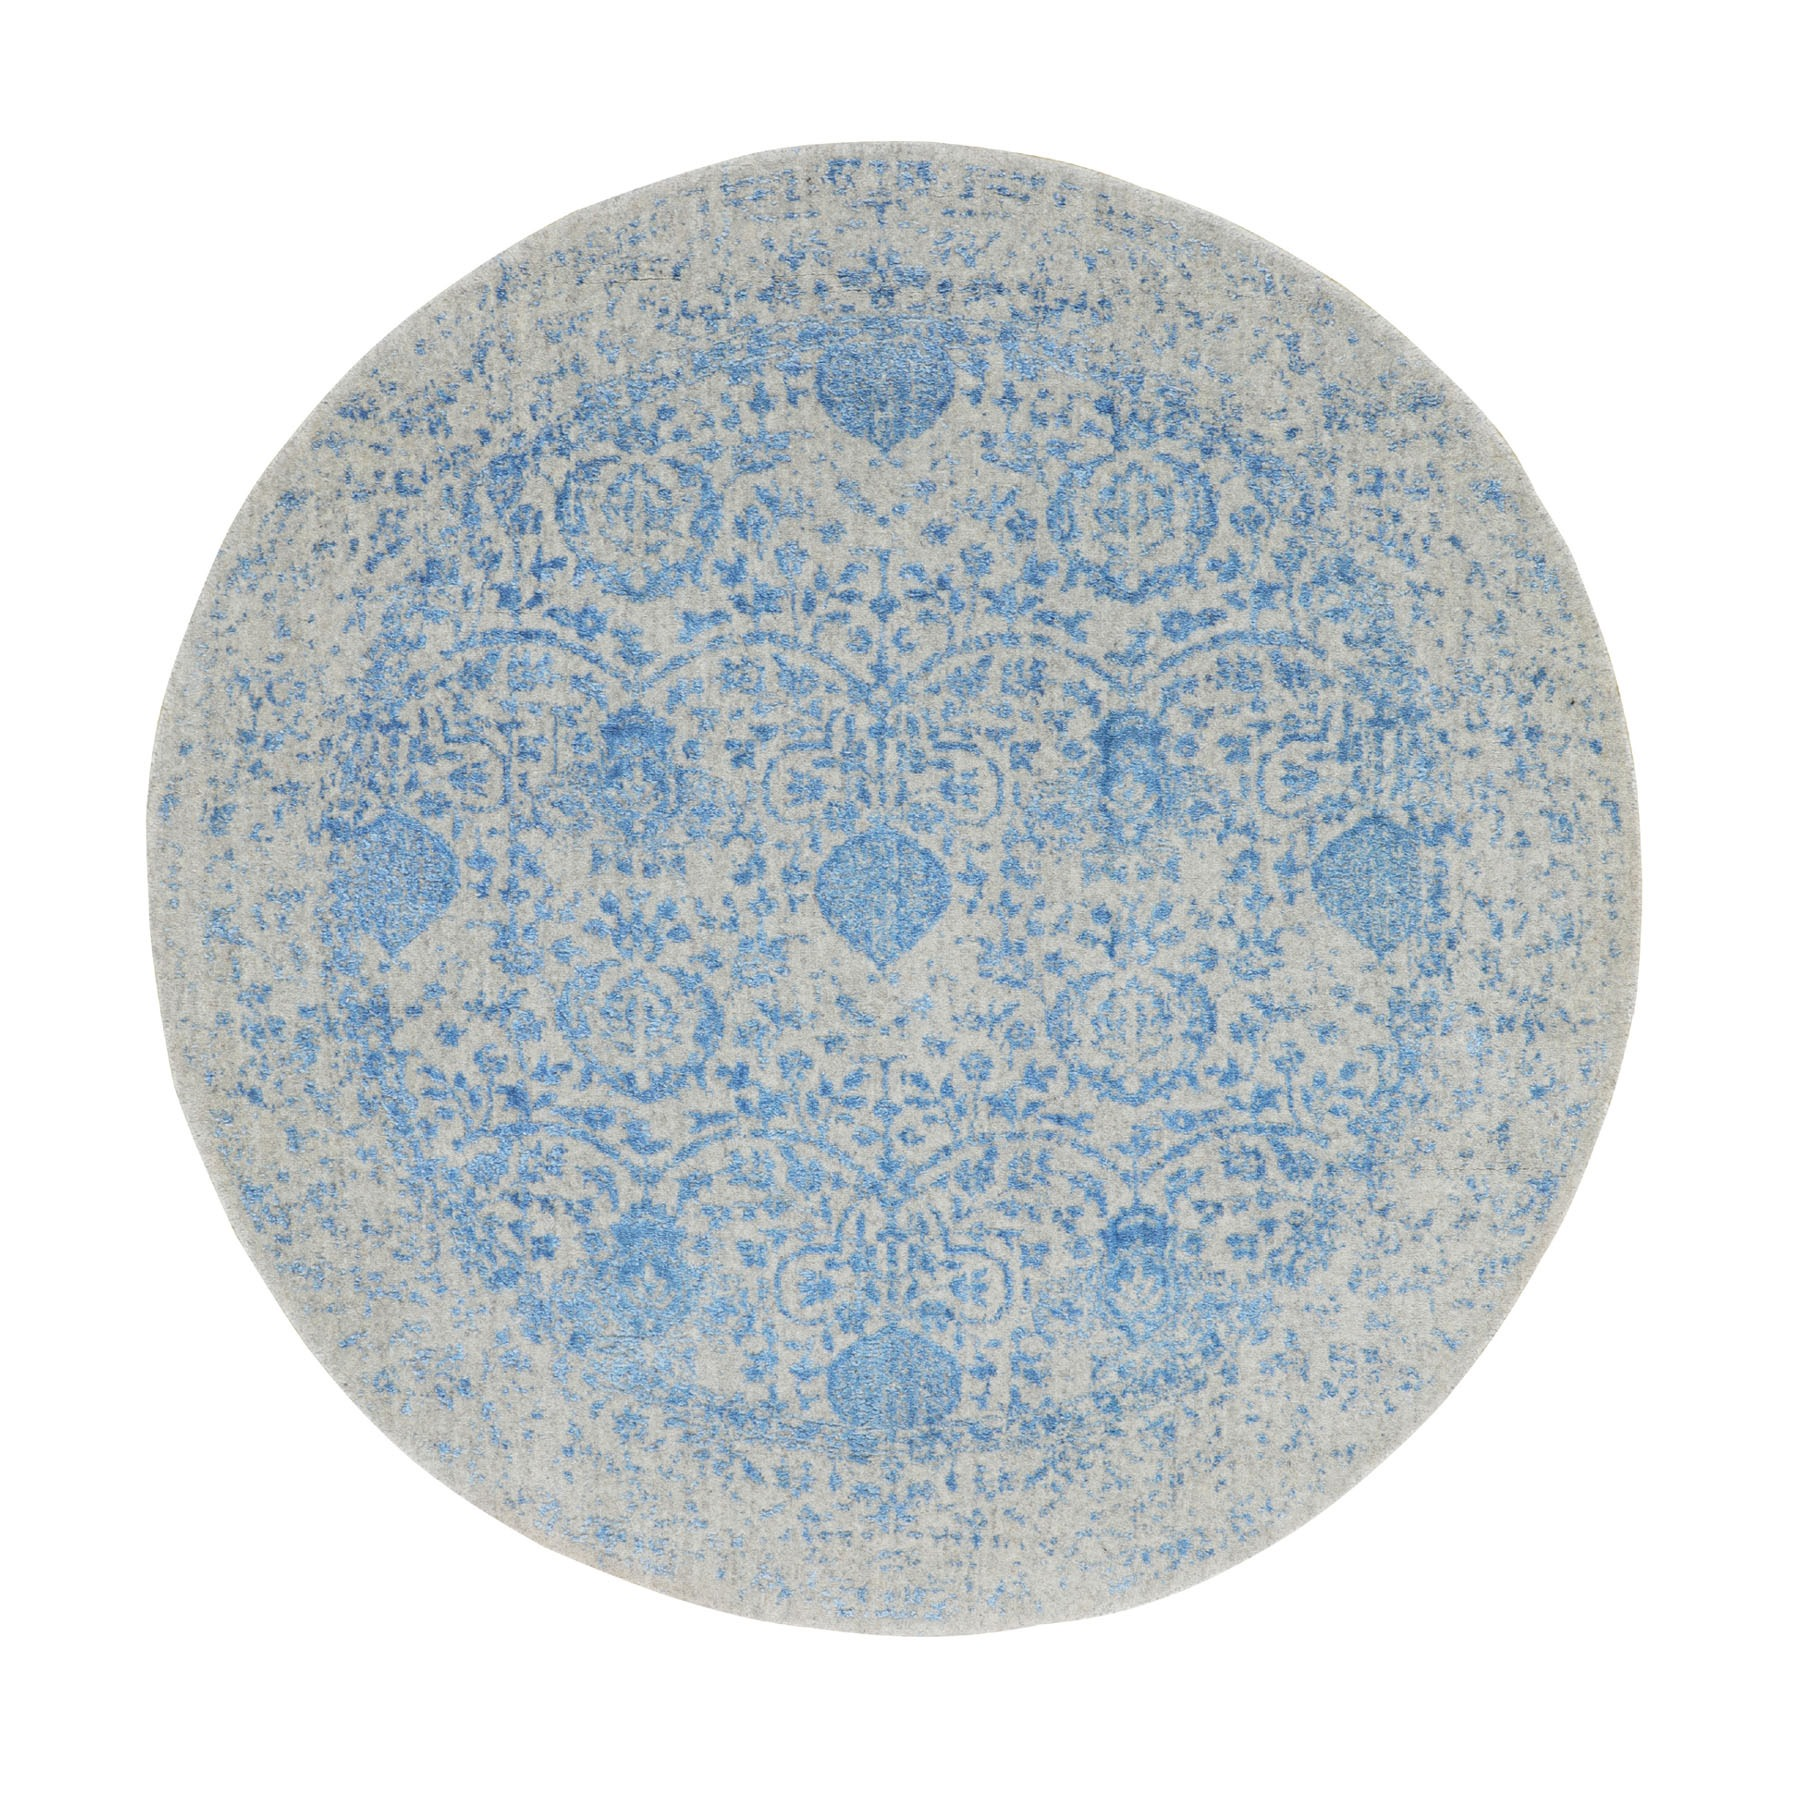 "5'9""x5'9"" Blue Jacquard Hand Loomed Wool and Art Silk Pomegranate Design Round Oriental Rug"